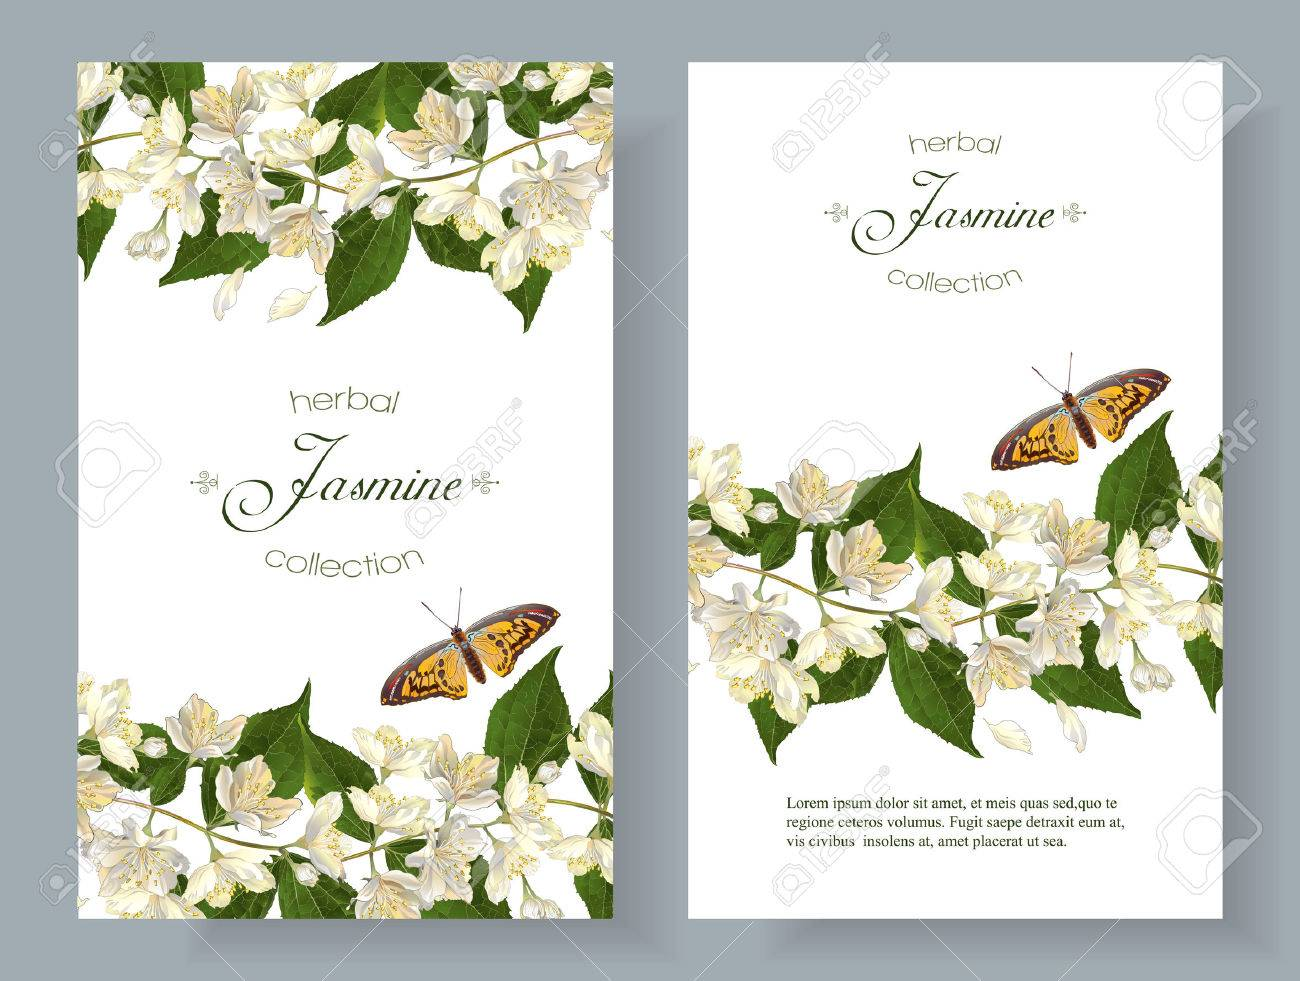 Vector jasmine flower banners. Design for tea, natural cosmetics, beauty store, organic health care products, perfume, essential oil, homeopathy, aromatherapy. With place for text. On white background - 66322849